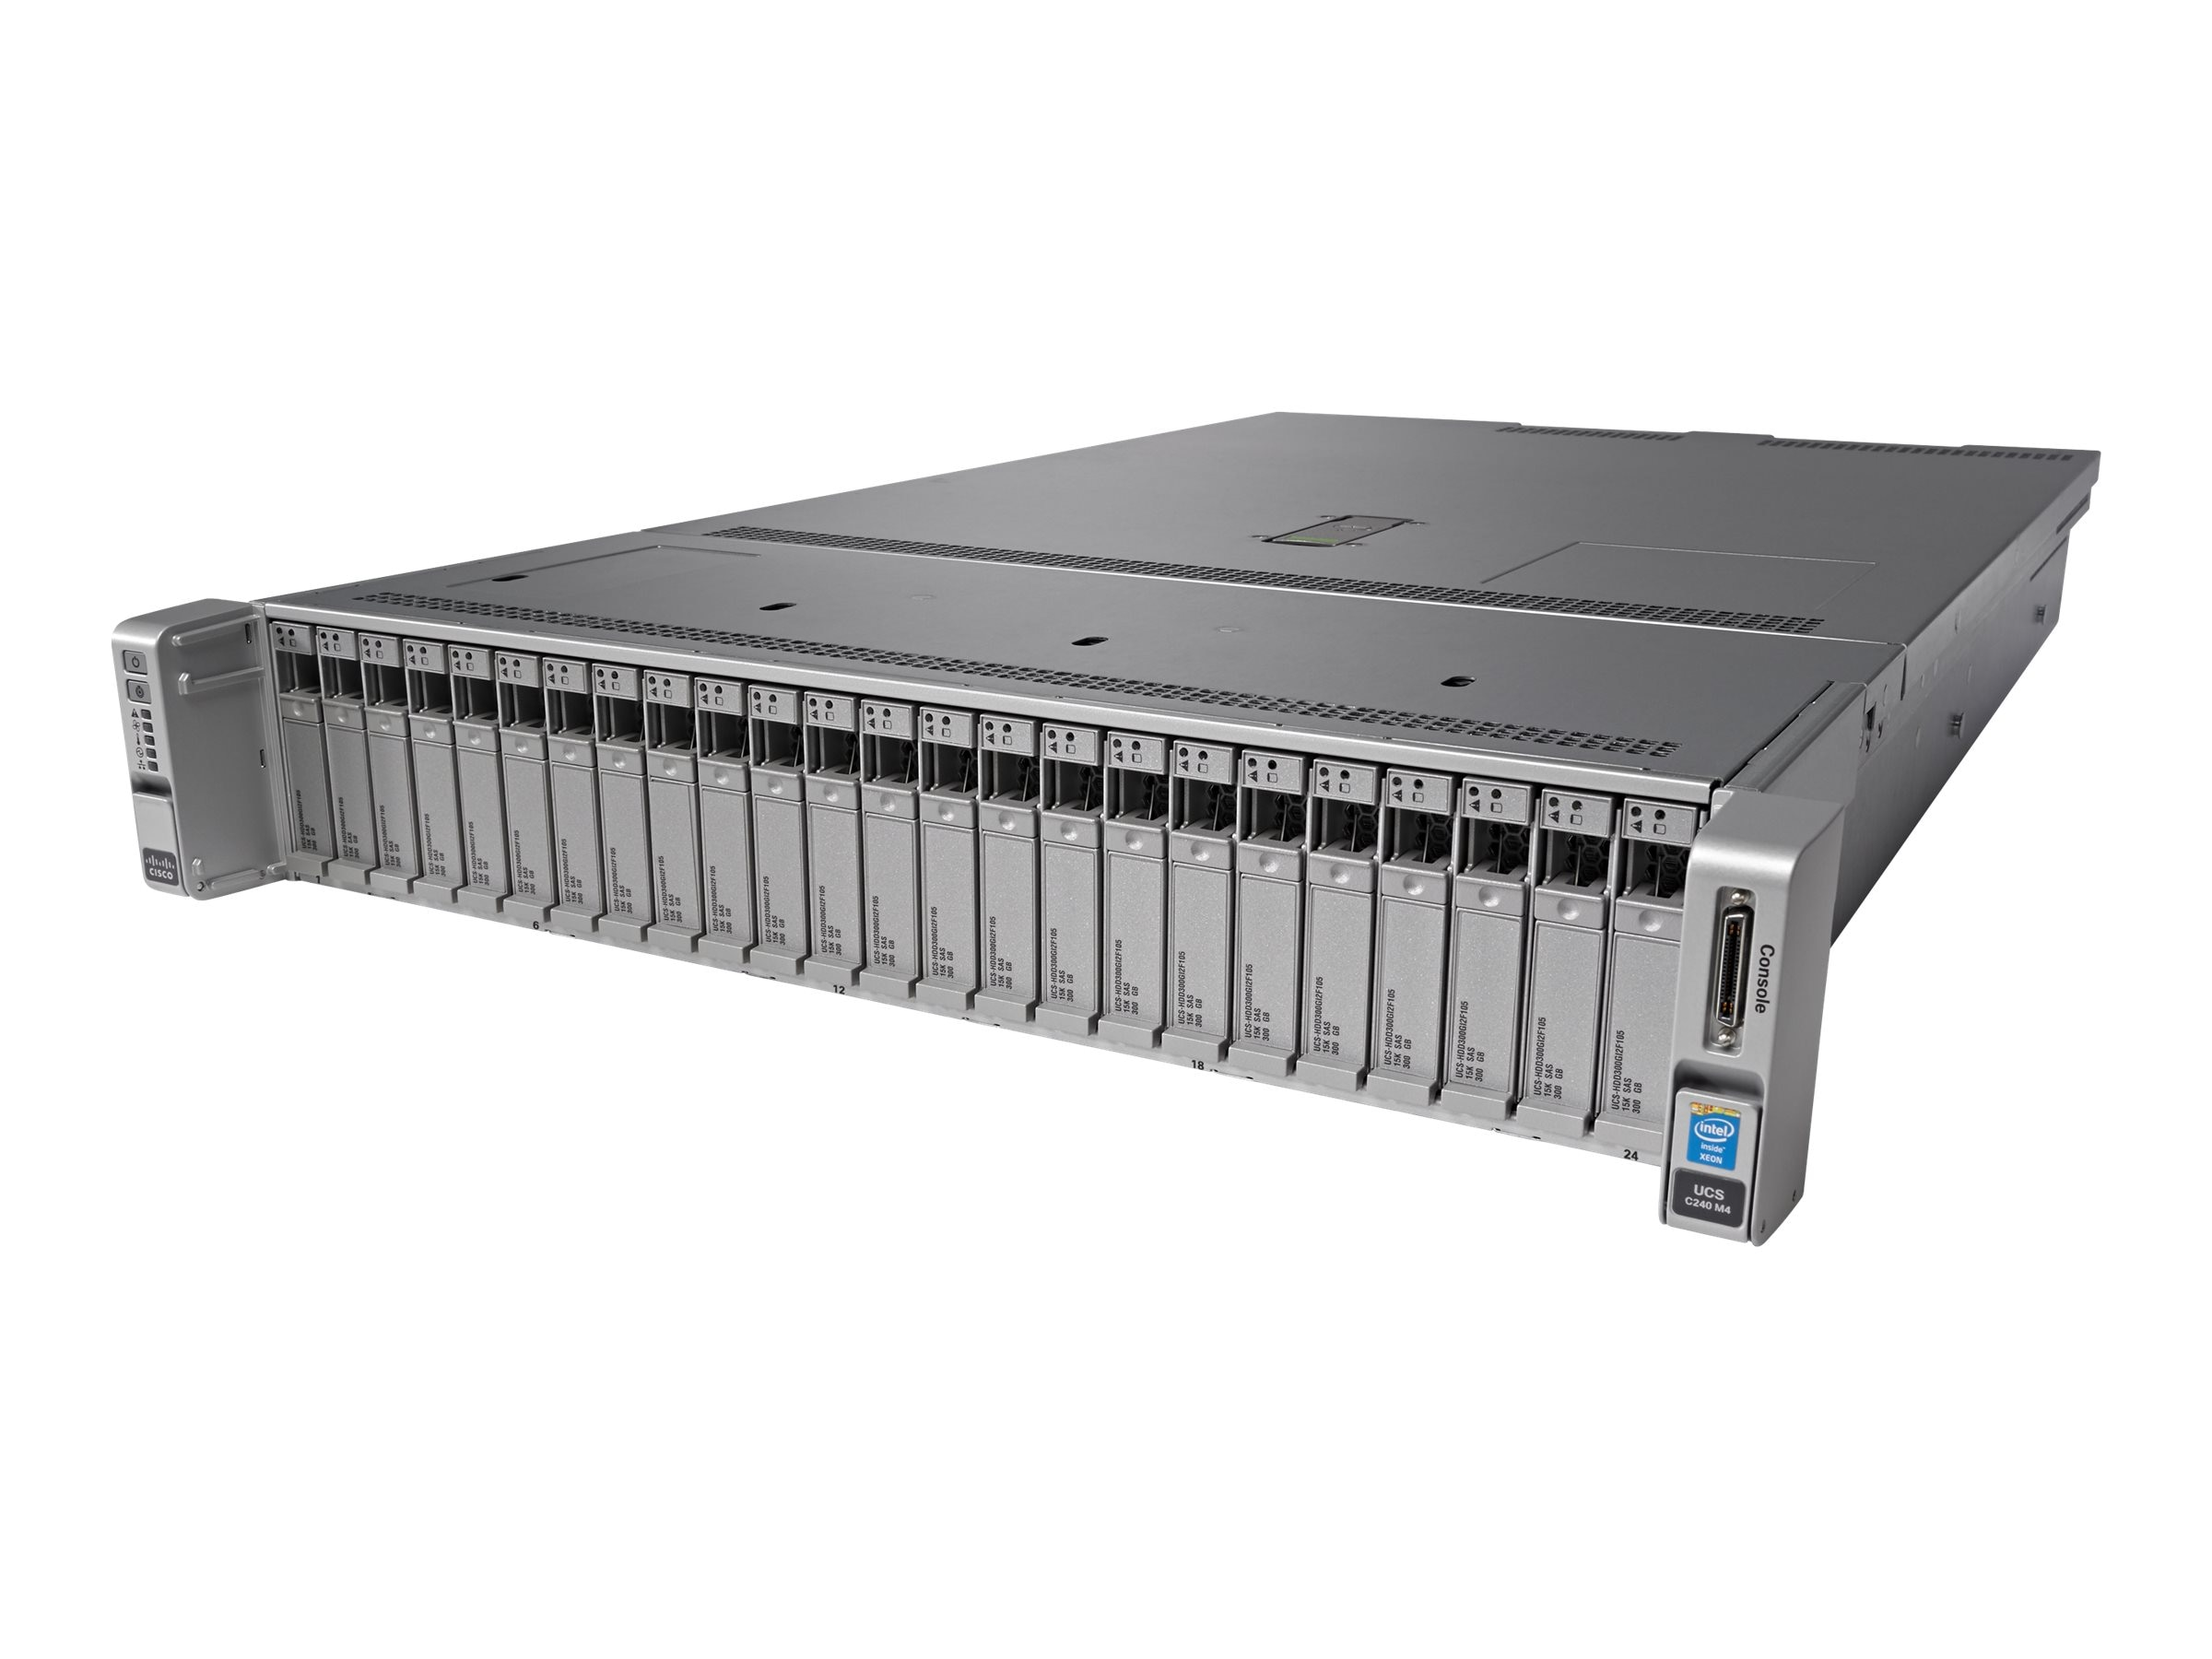 Cisco SmartPlay Select C240 M4 Standard 2 (2x)E5-2620 v3 128GB VIC1227 2x1400W, UCS-SPL-C240M4-S2, 22999871, Processor Upgrades